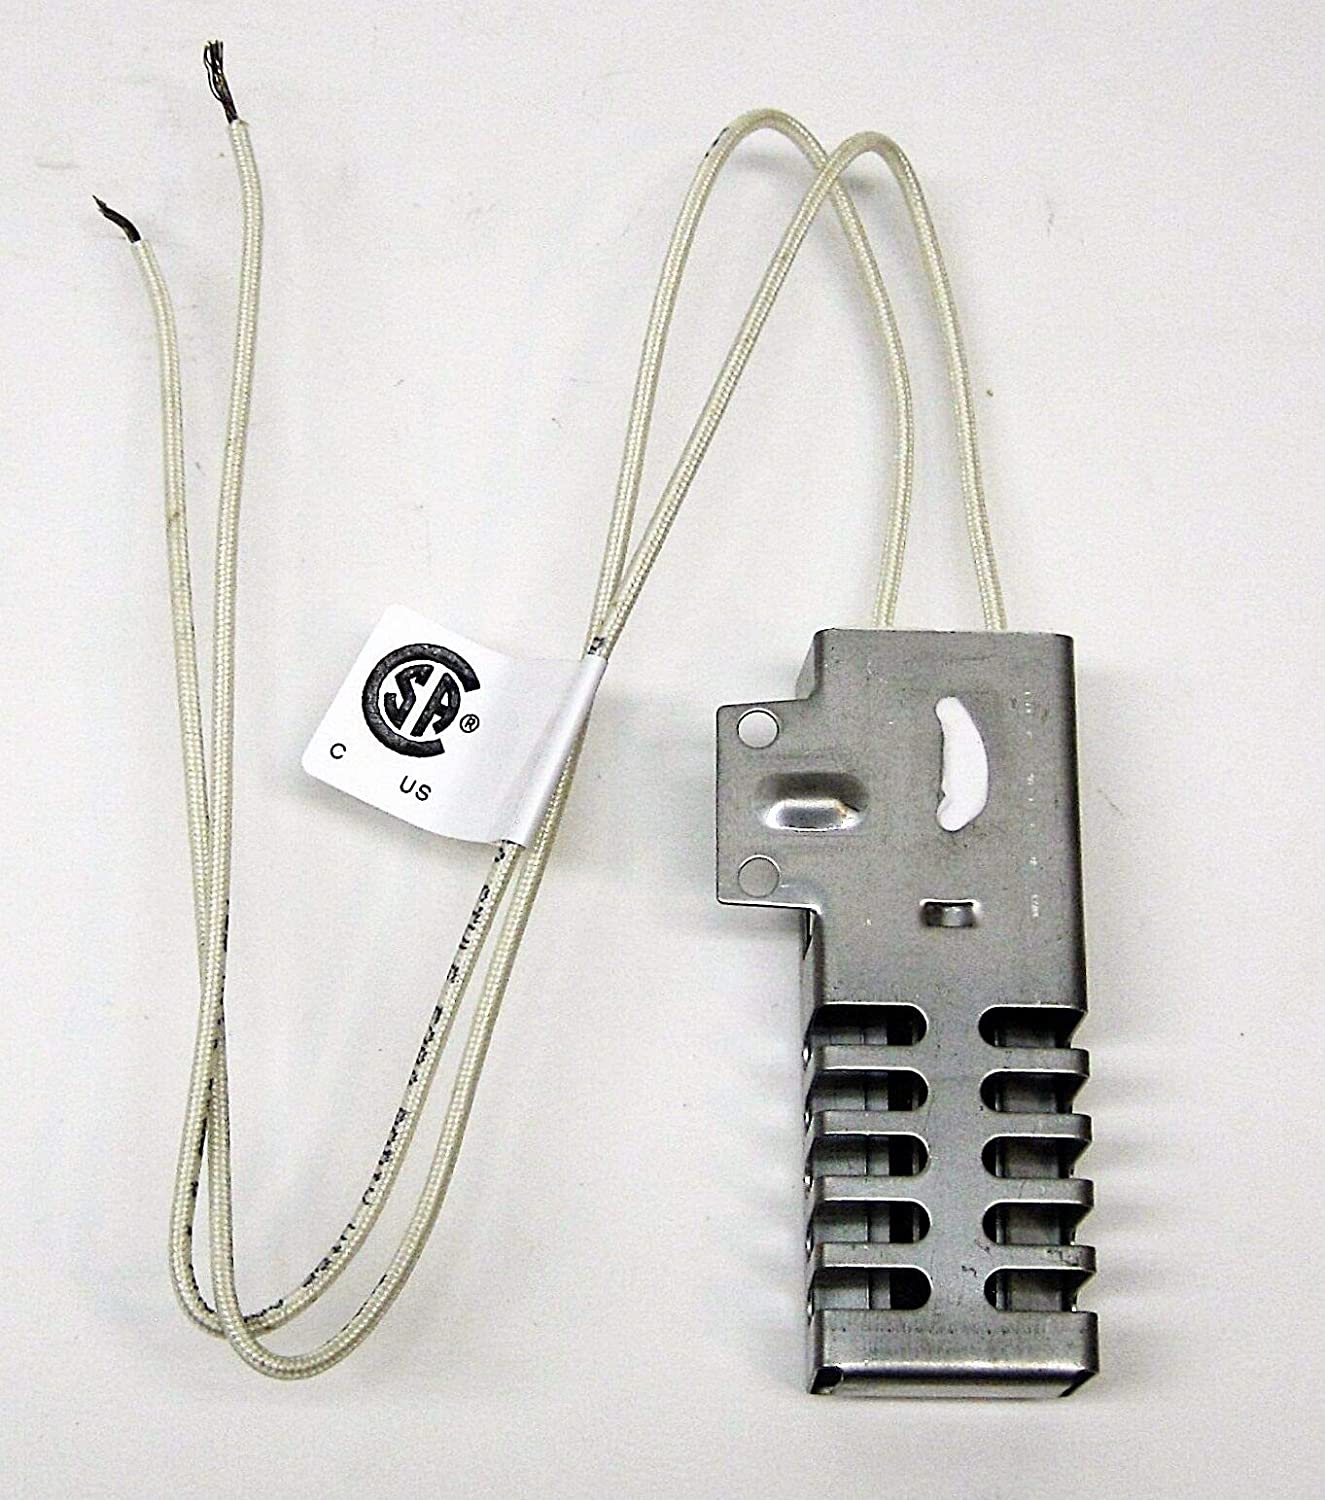 New Replacement Suitable for Electrolux Frigidaire 5303935066 Oven Range Flat Igniter